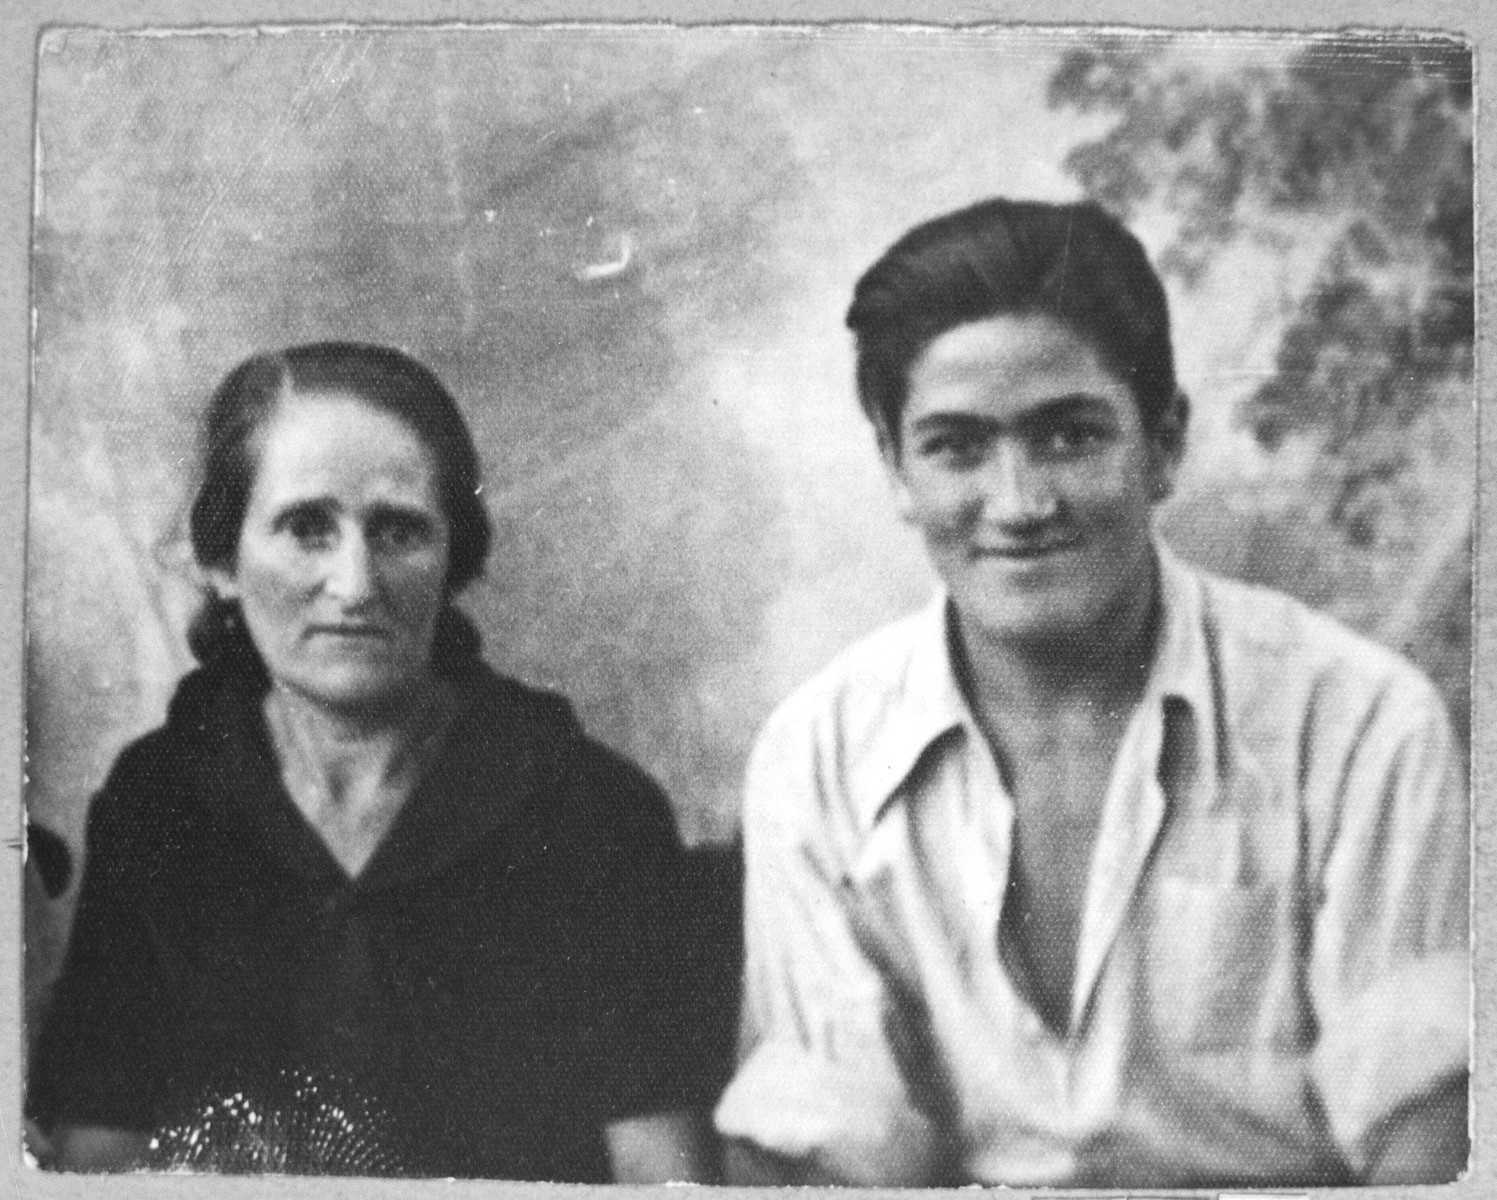 Portrait of Alegra Nissan, wife of Yakov Nissan, and Alberto Nissan, son of Yakov Nissan.  Yakov was a student.  They lived at Ferisovatska 34 in Bitola.